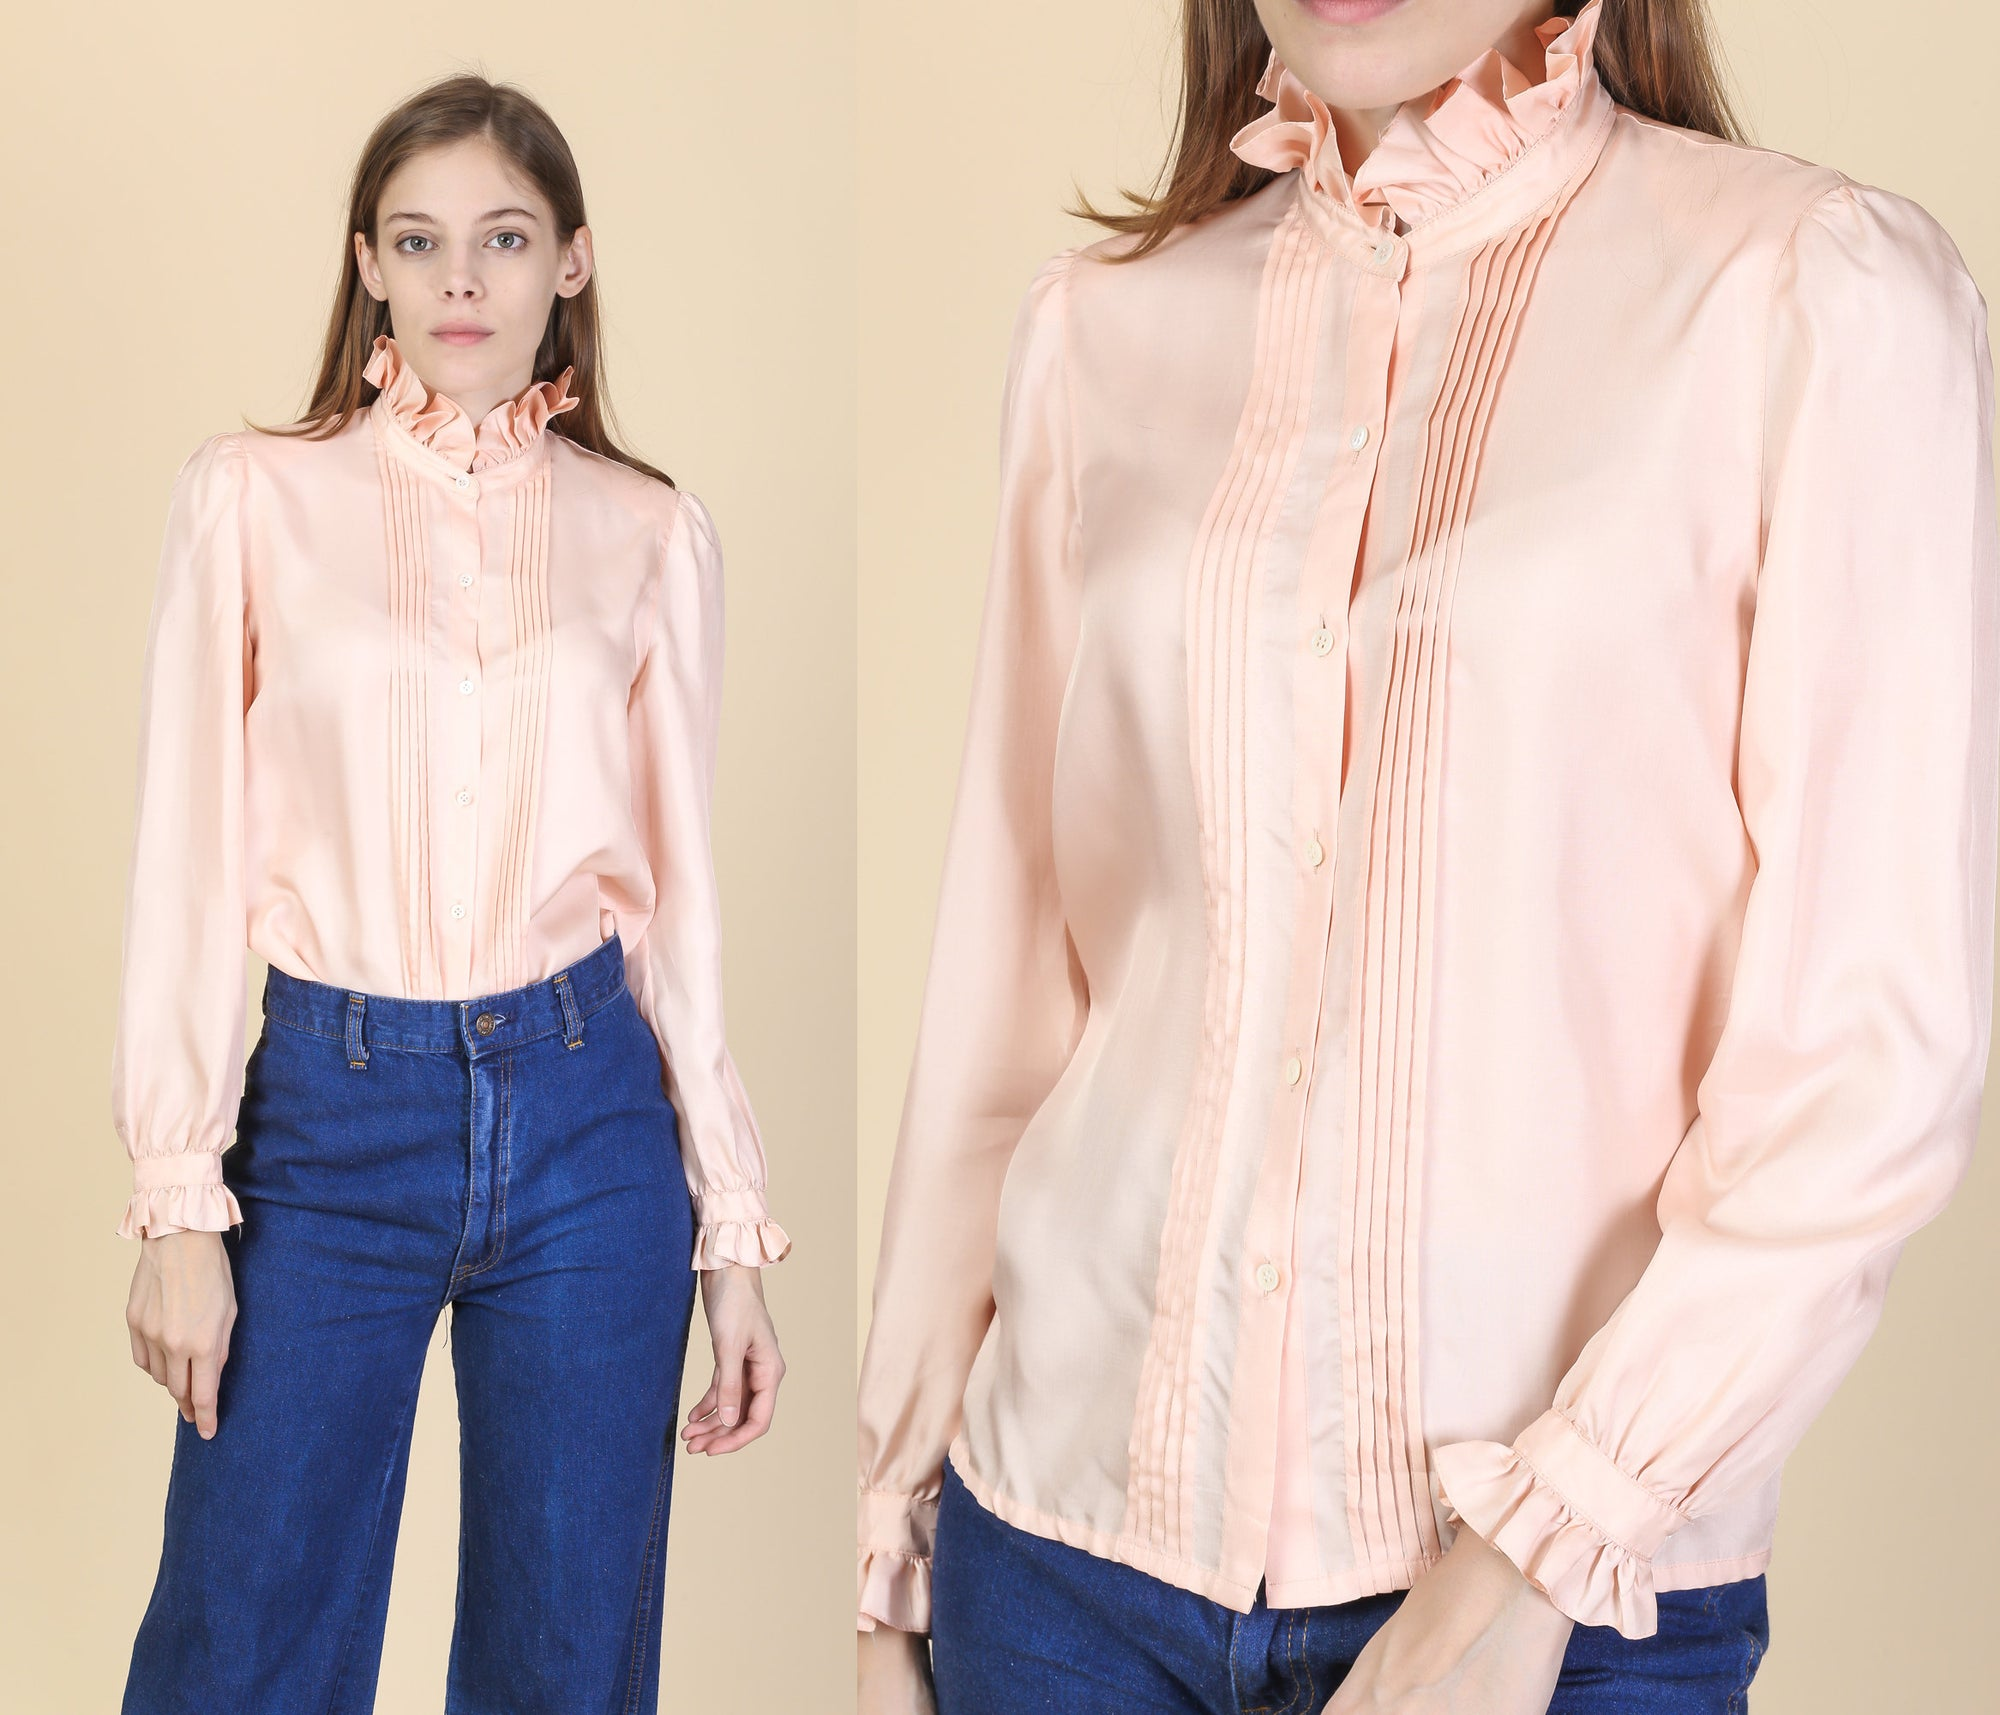 Vintage Victorian Pink Ruffle Collar Blouse - Small